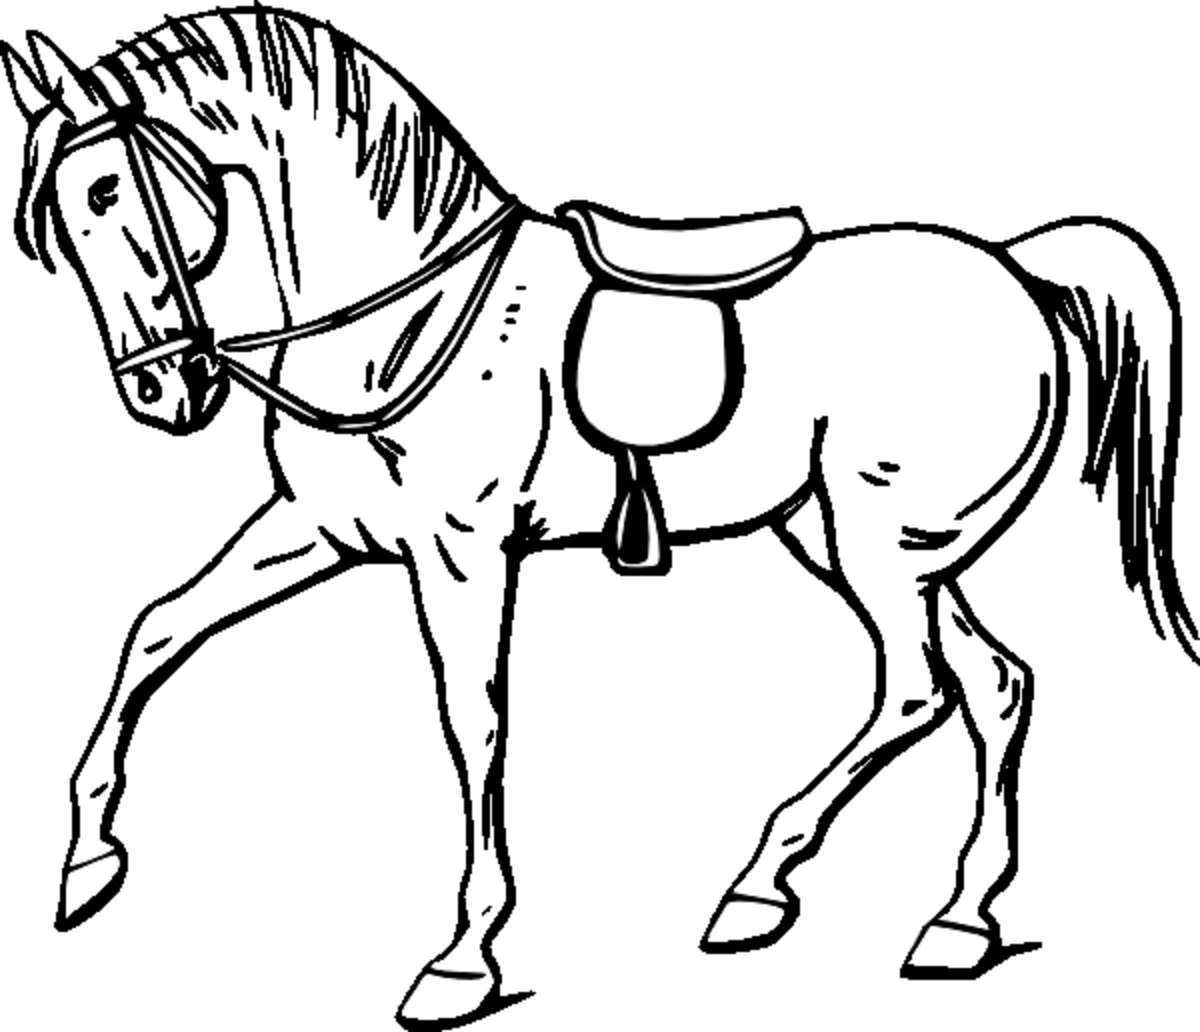 kids horse coloring pages colour drawing free hd wallpapers horse for kids coloring coloring kids pages horse